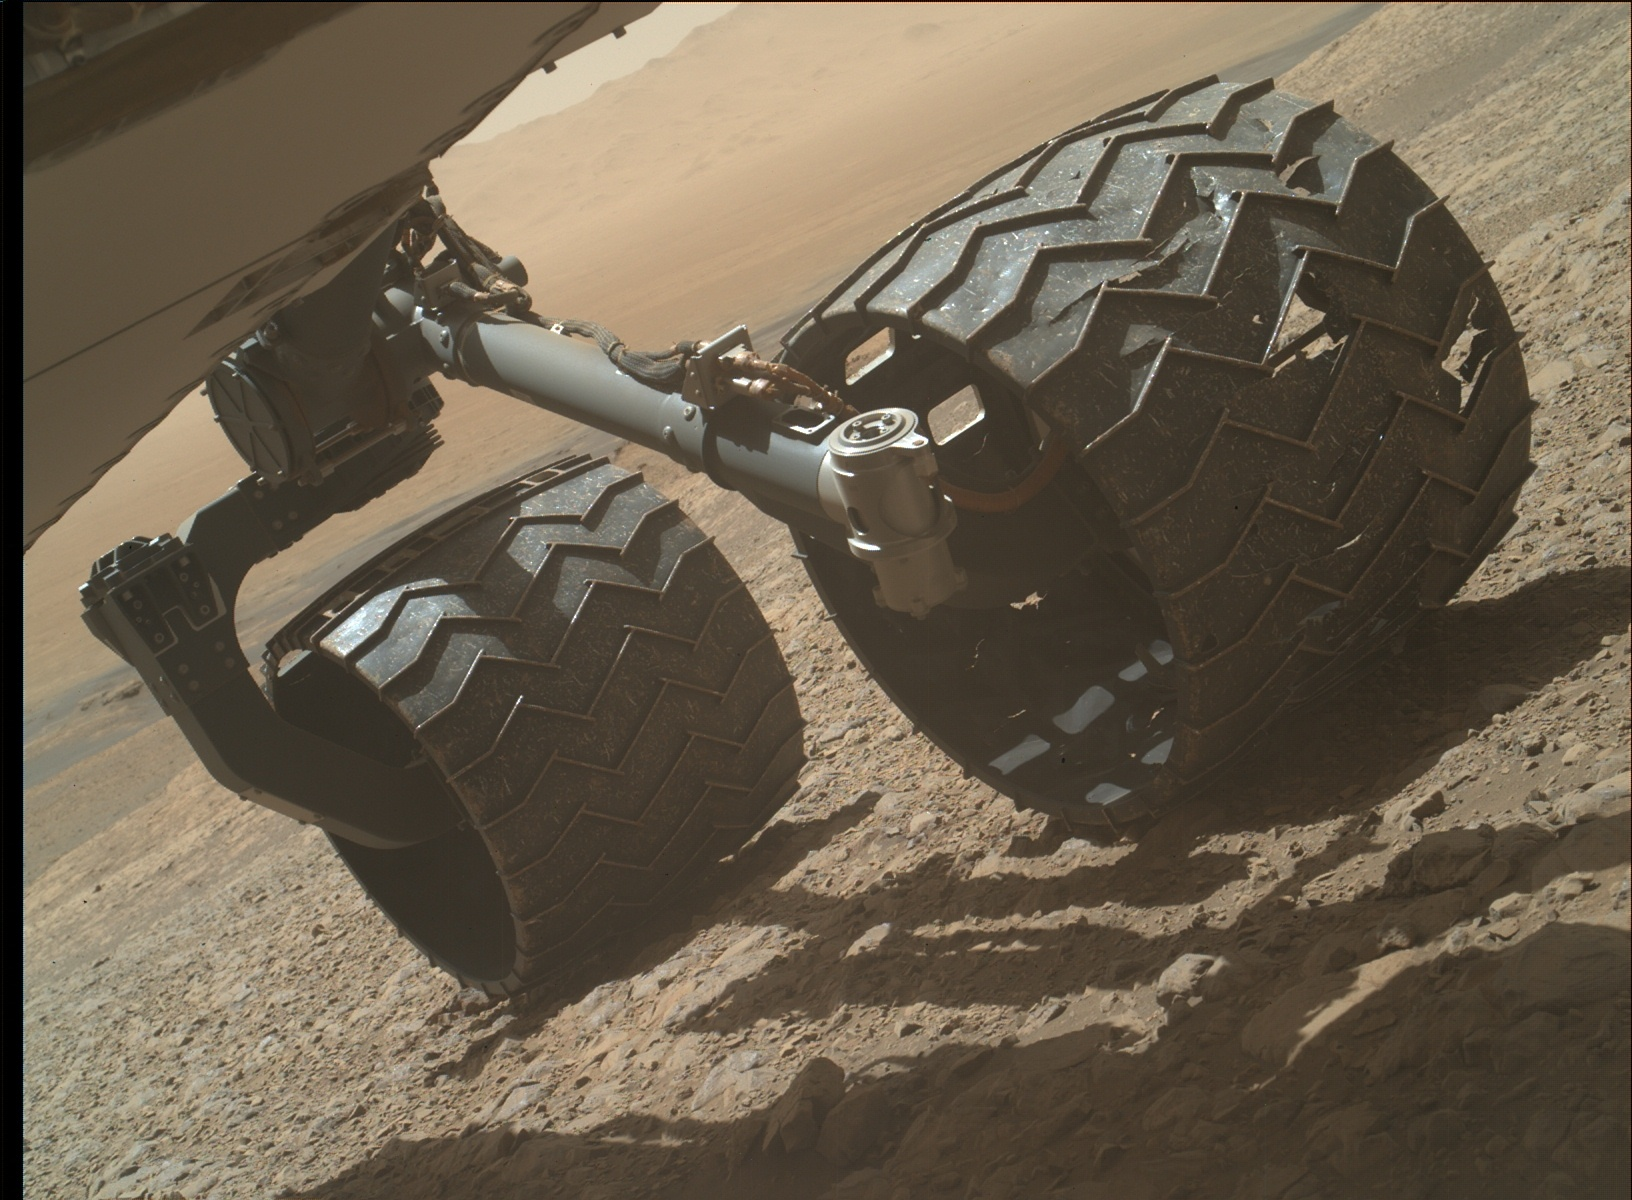 Sol 1991-1992: Taking our time for science